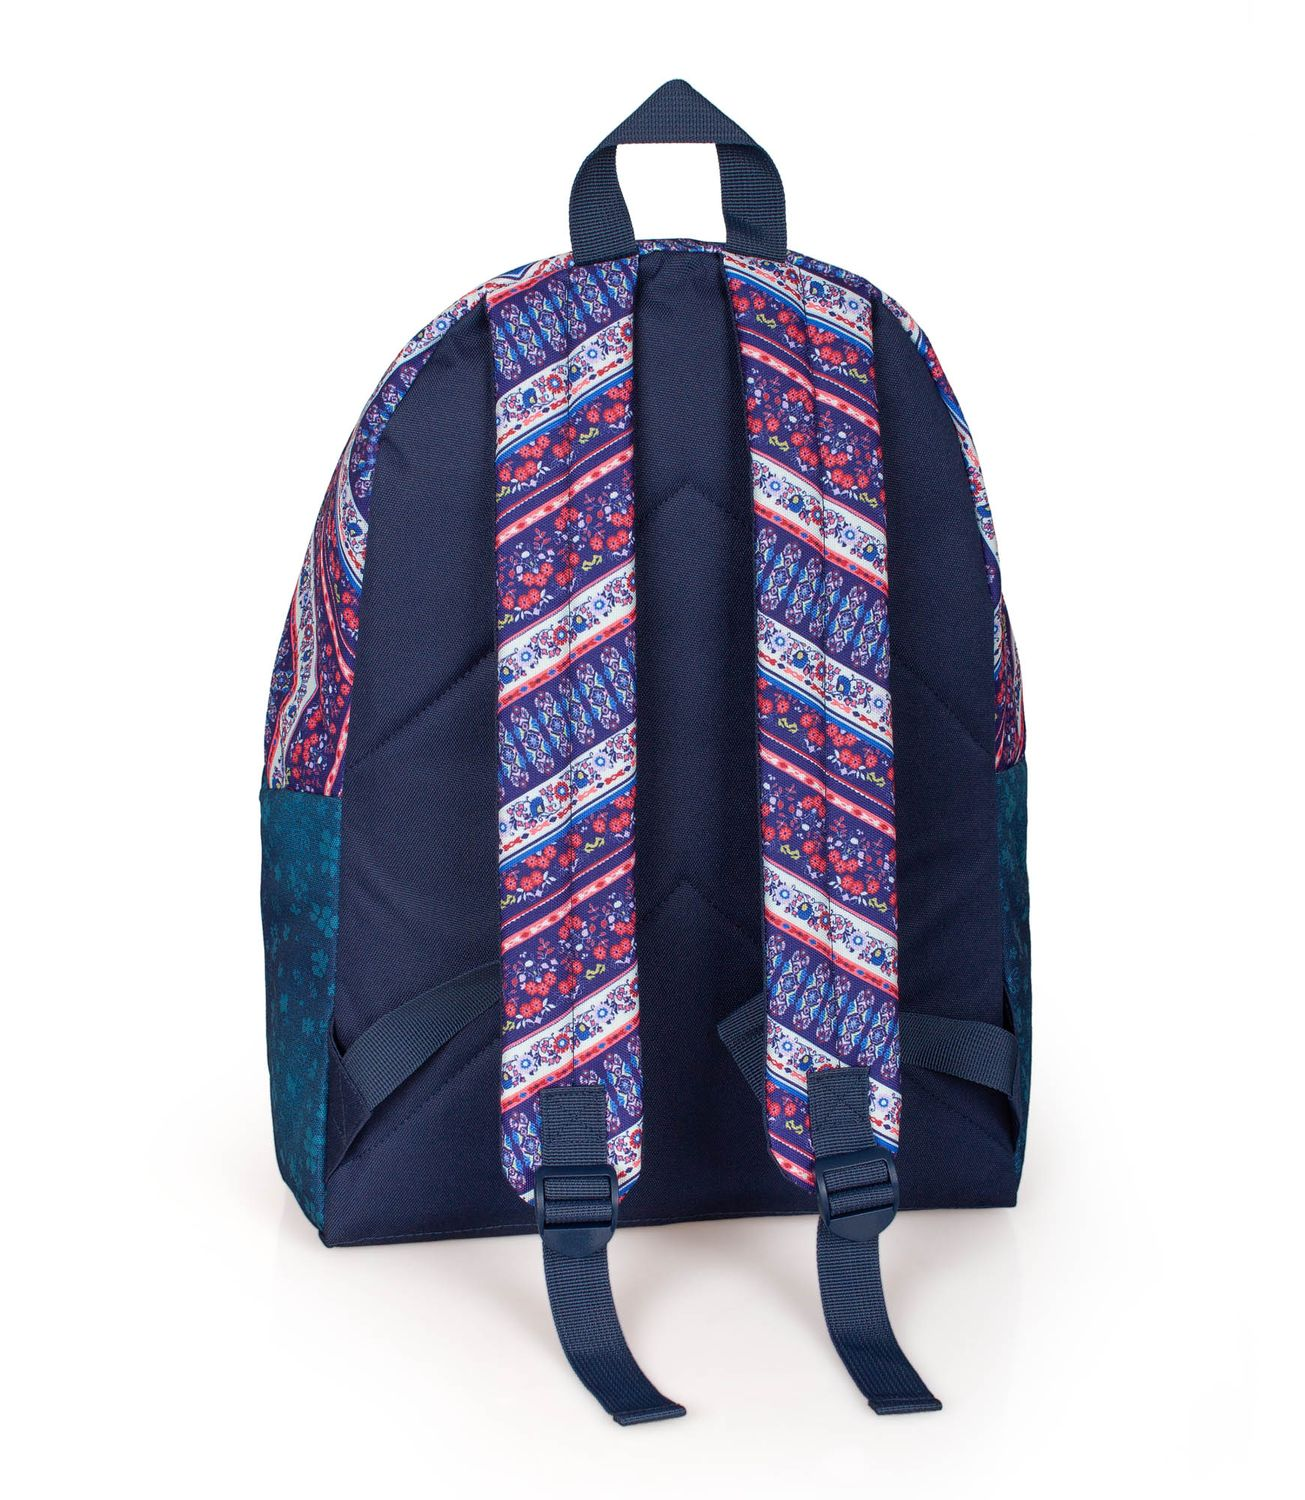 Backpack Rucksack EL CHARRO ETHNIC DENIM – image 2